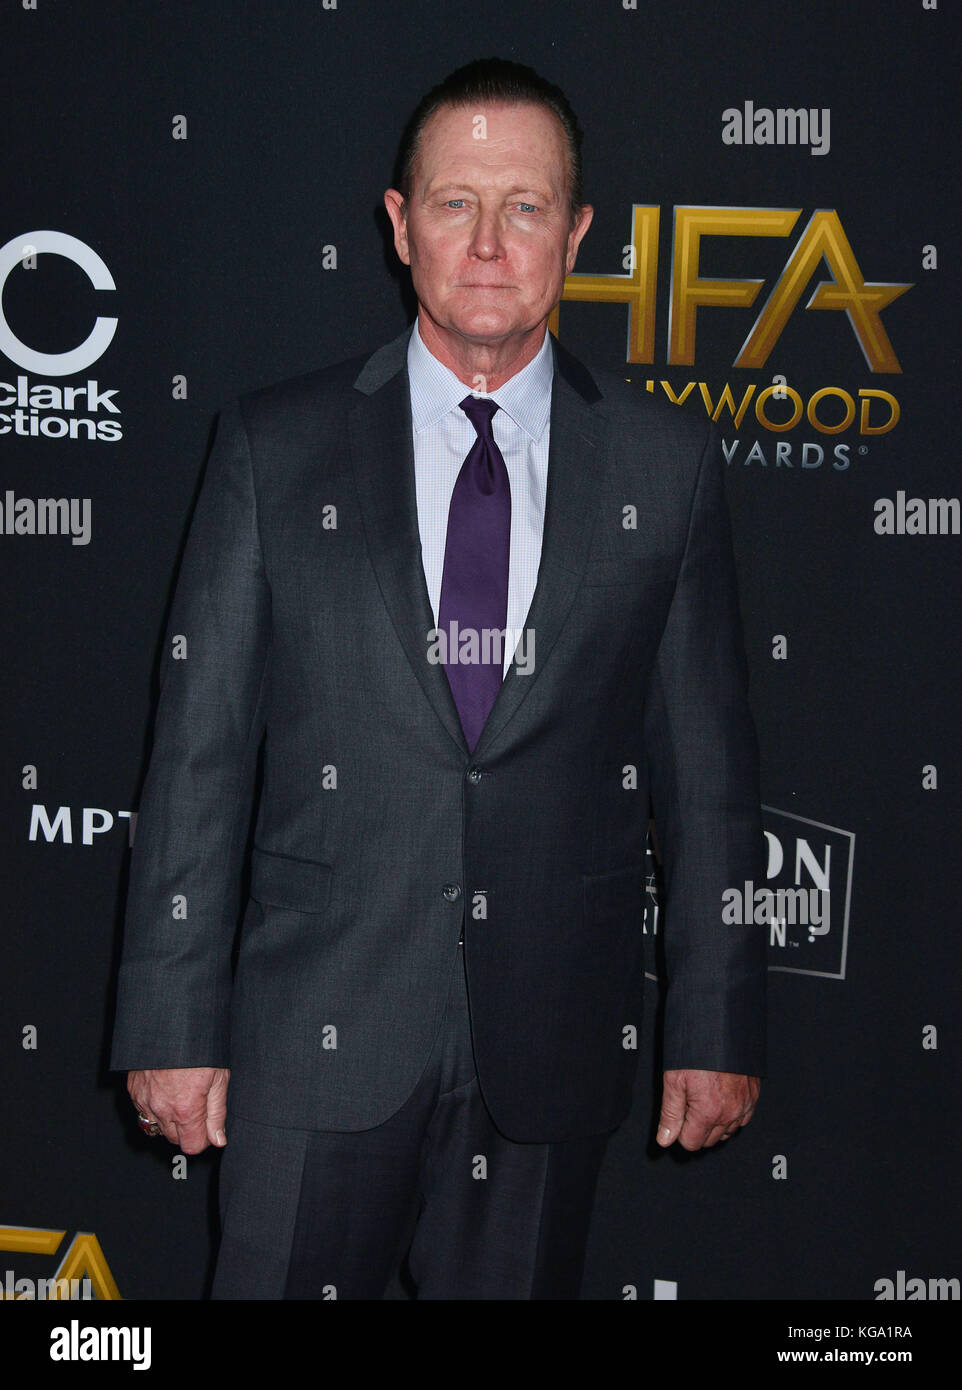 Los Angeles, USA. 05th Nov, 2017. Robert Patrick 022 attends the 21st Annual Hollywood Film Awards at The Beverly - Stock Image